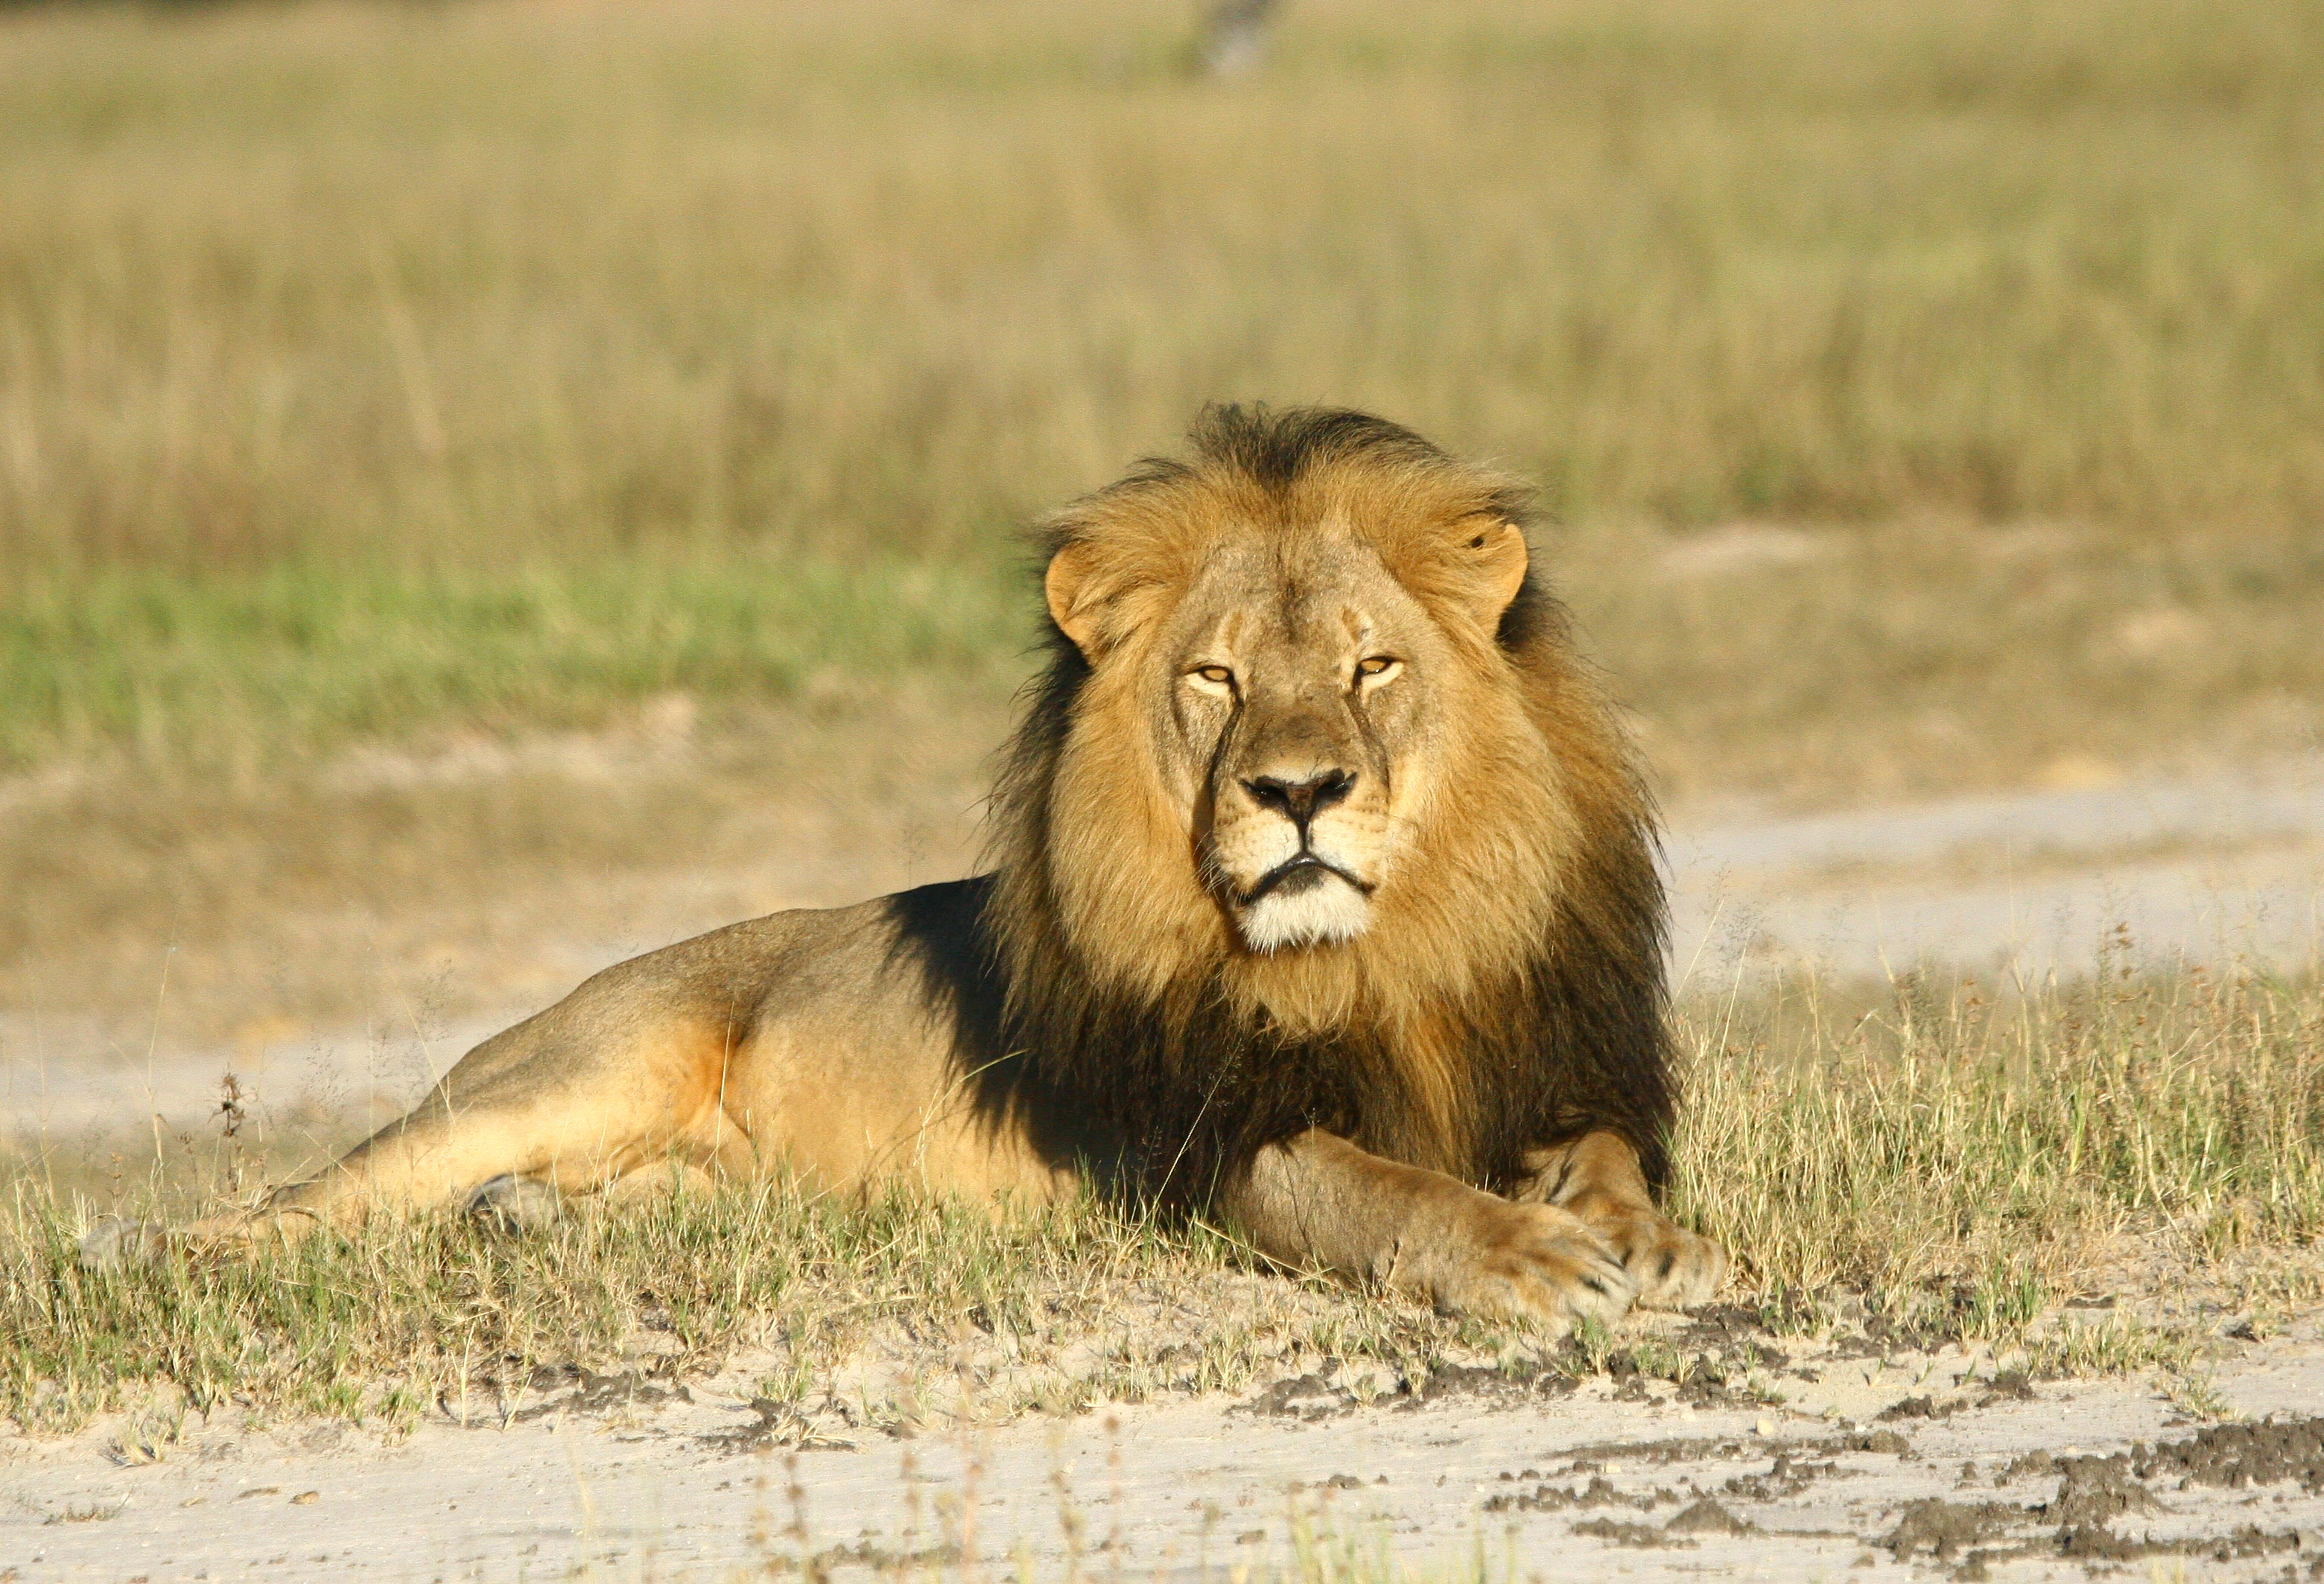 Guide Who Lured Cecil Says He's Done Nothing Wrong